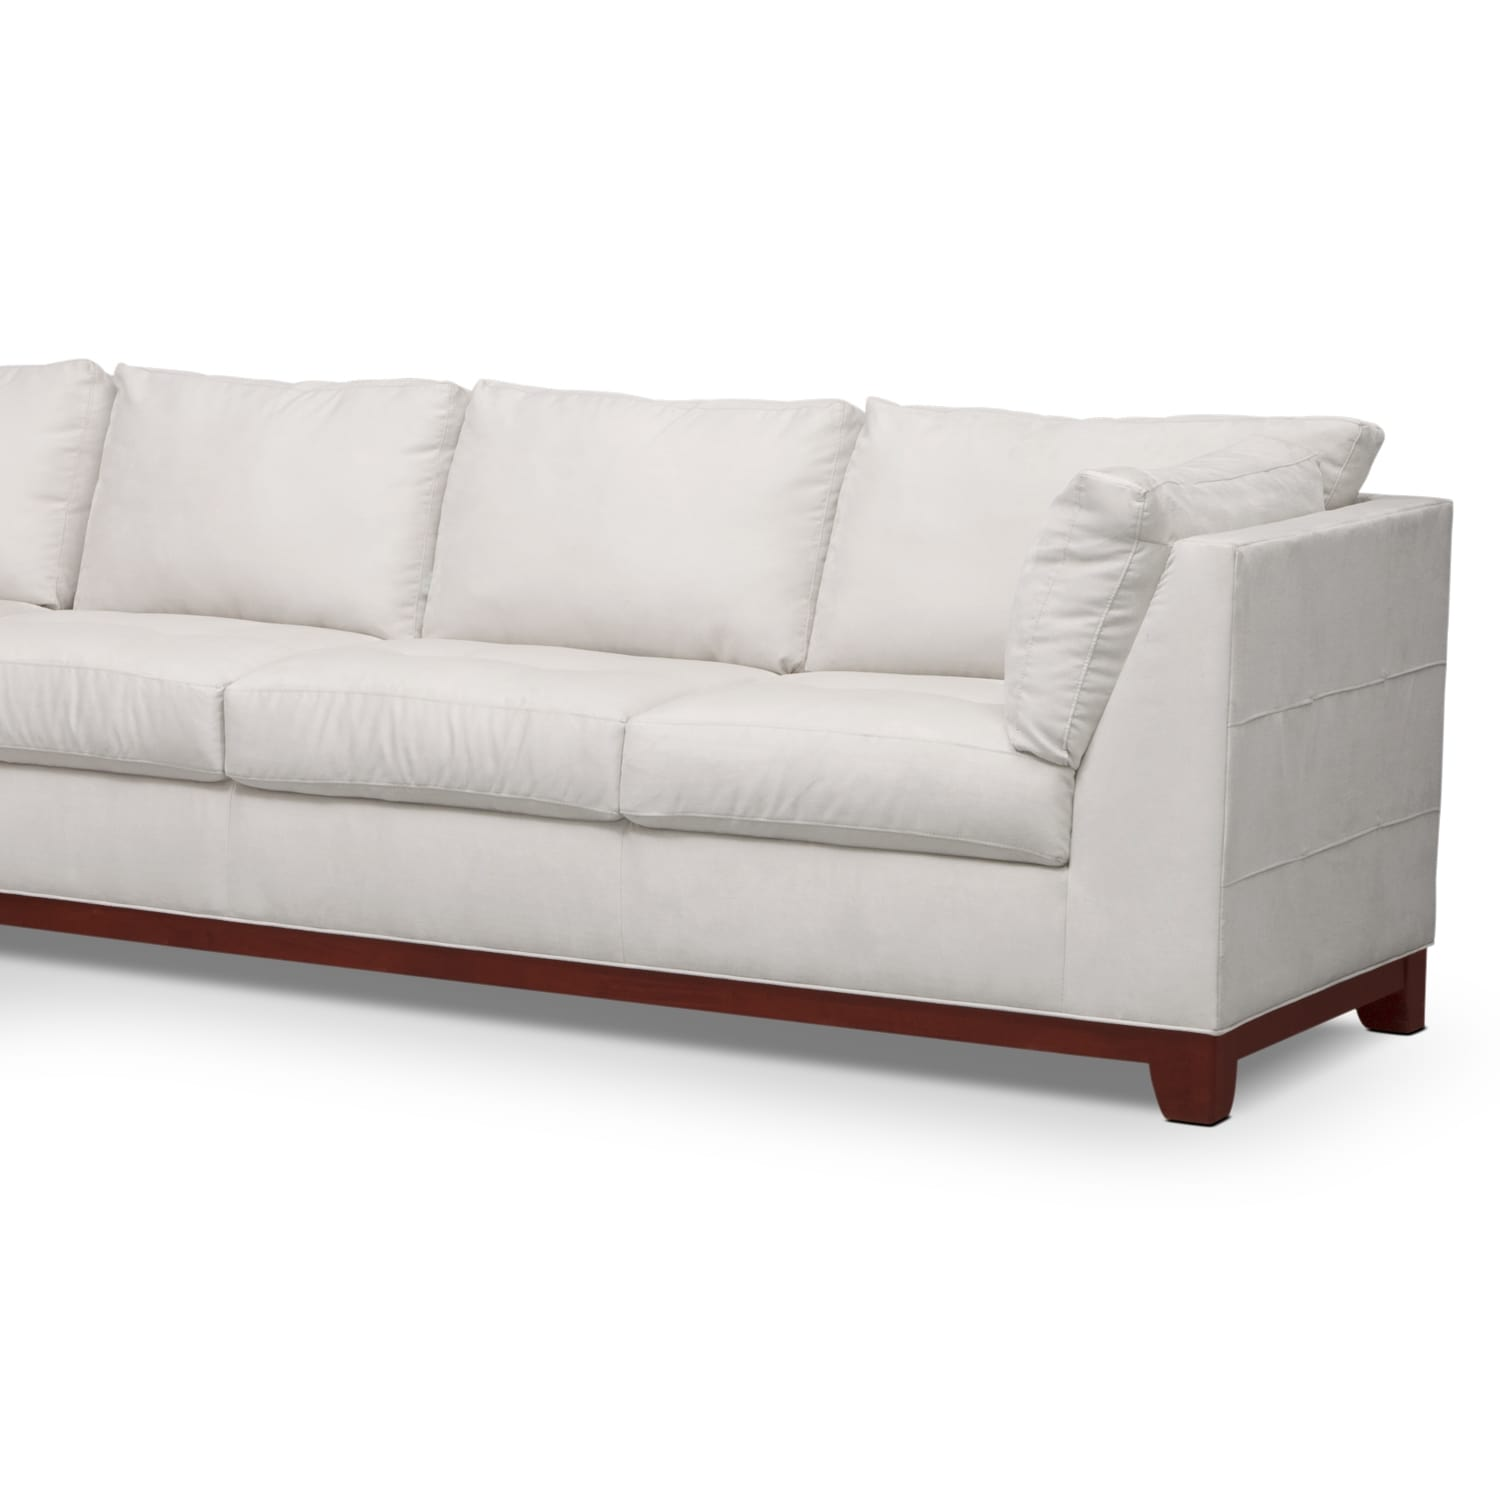 Soho 2 piece sectional with left facing chaise cement for 2 piece sectionals with chaise